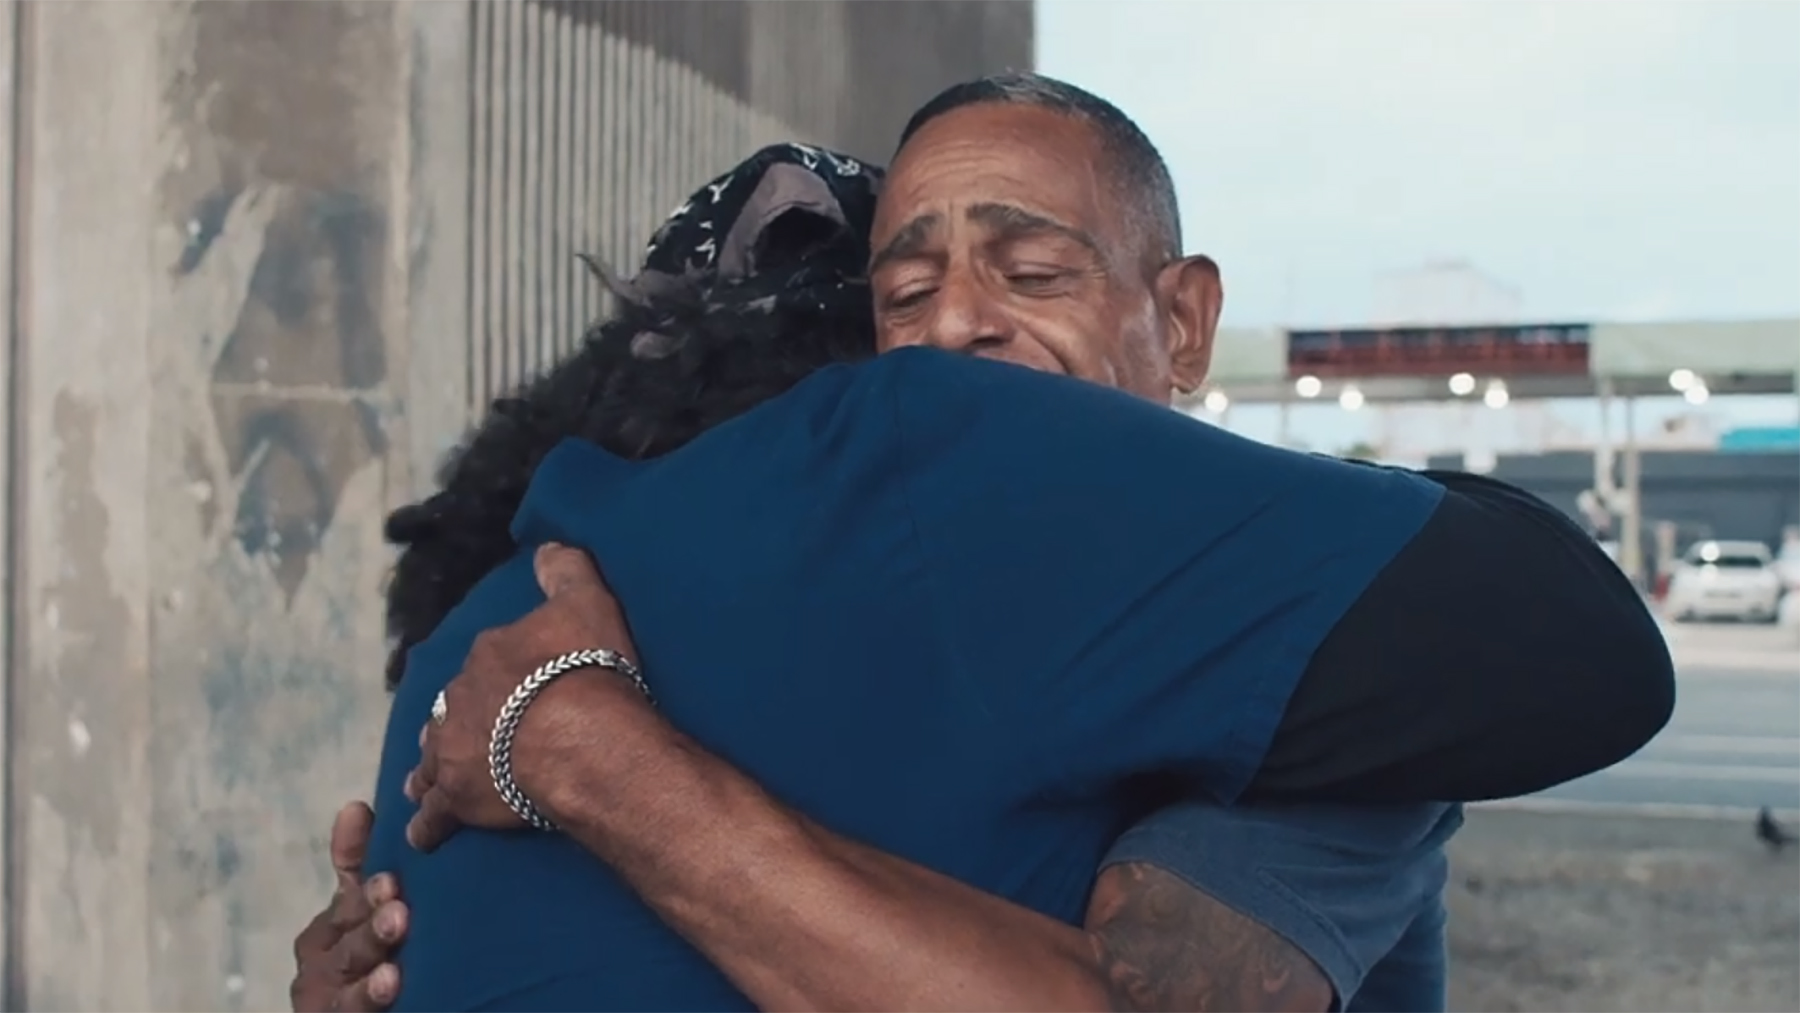 Health workers took heroic measures to protect people from overdoses in 2019, whether in Virginia or Puerto Rico. Above, Dr. Chaco Vargas hugs a patient in Puerto Rico while doing outreach earlier this year to those in recovery from opioid addiction. (Bimarian Films)